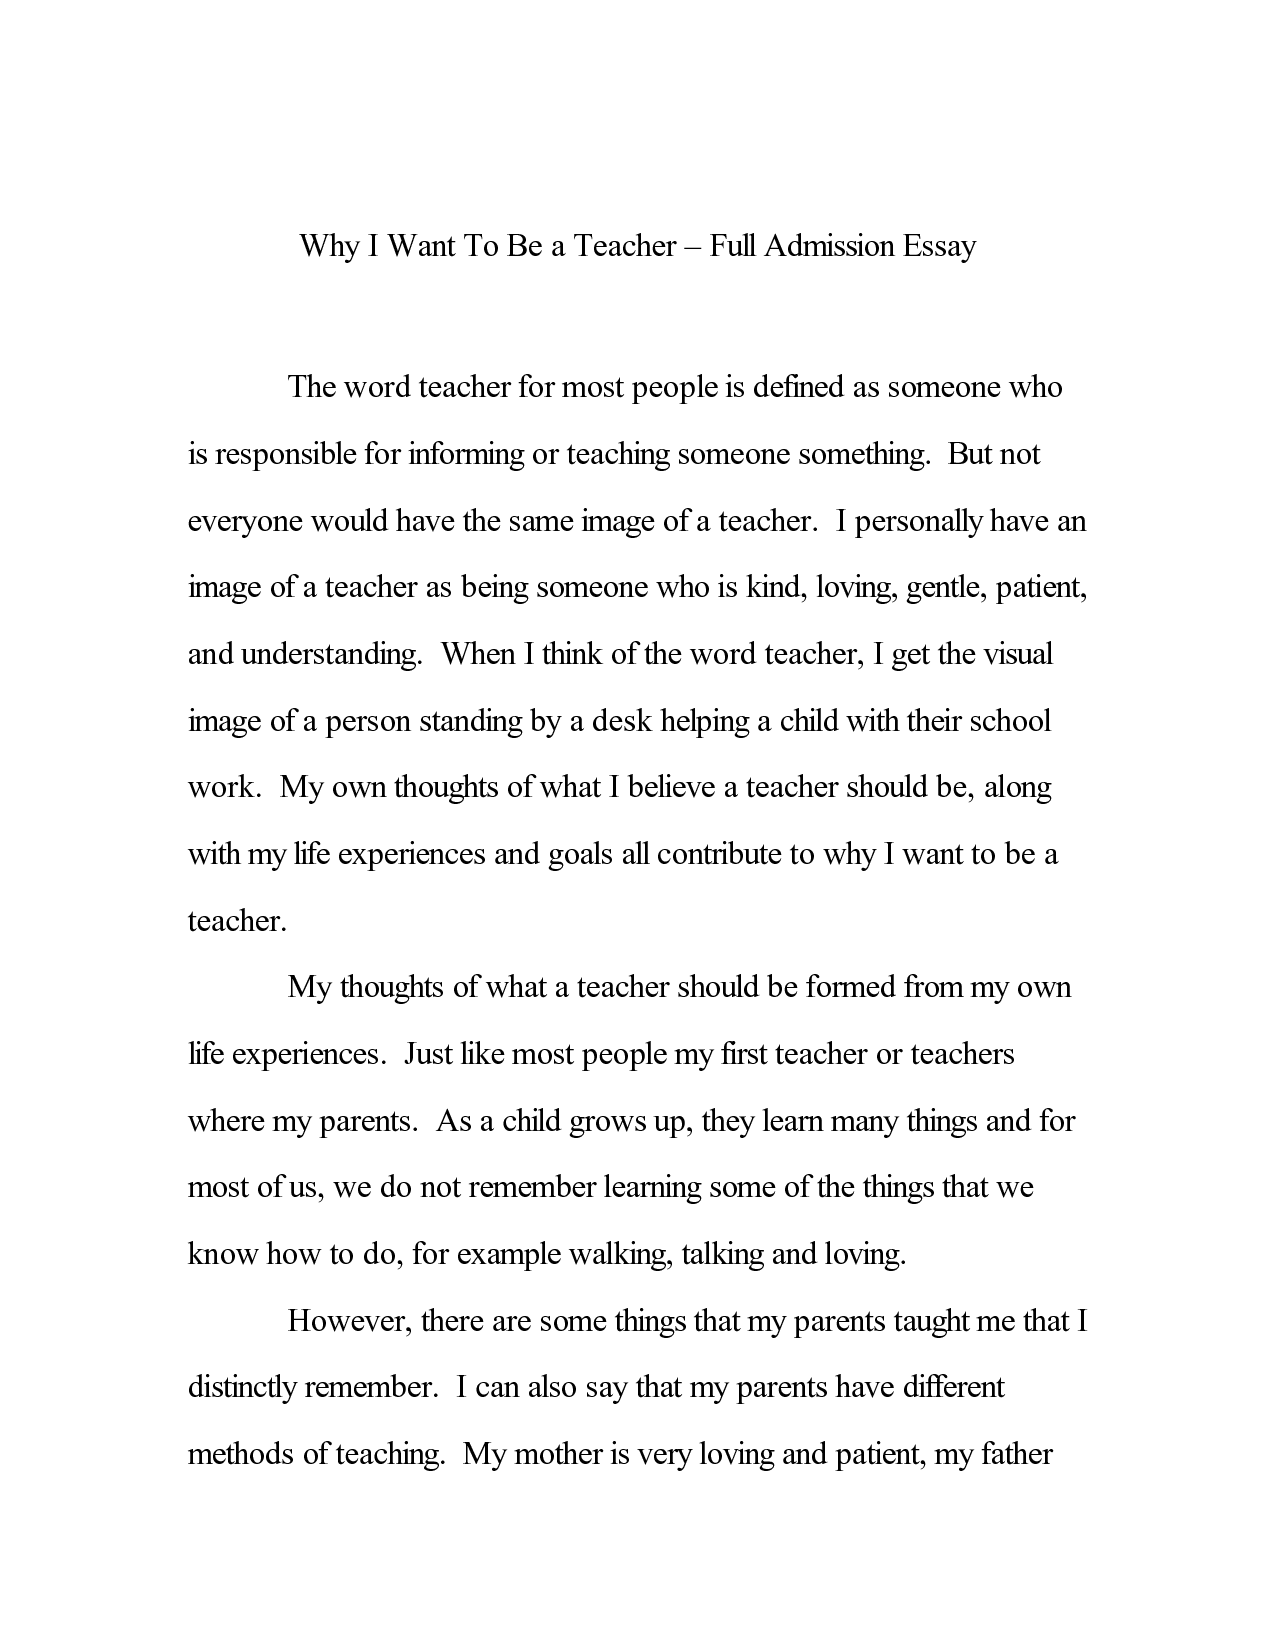 Buy a custom essay mesiter